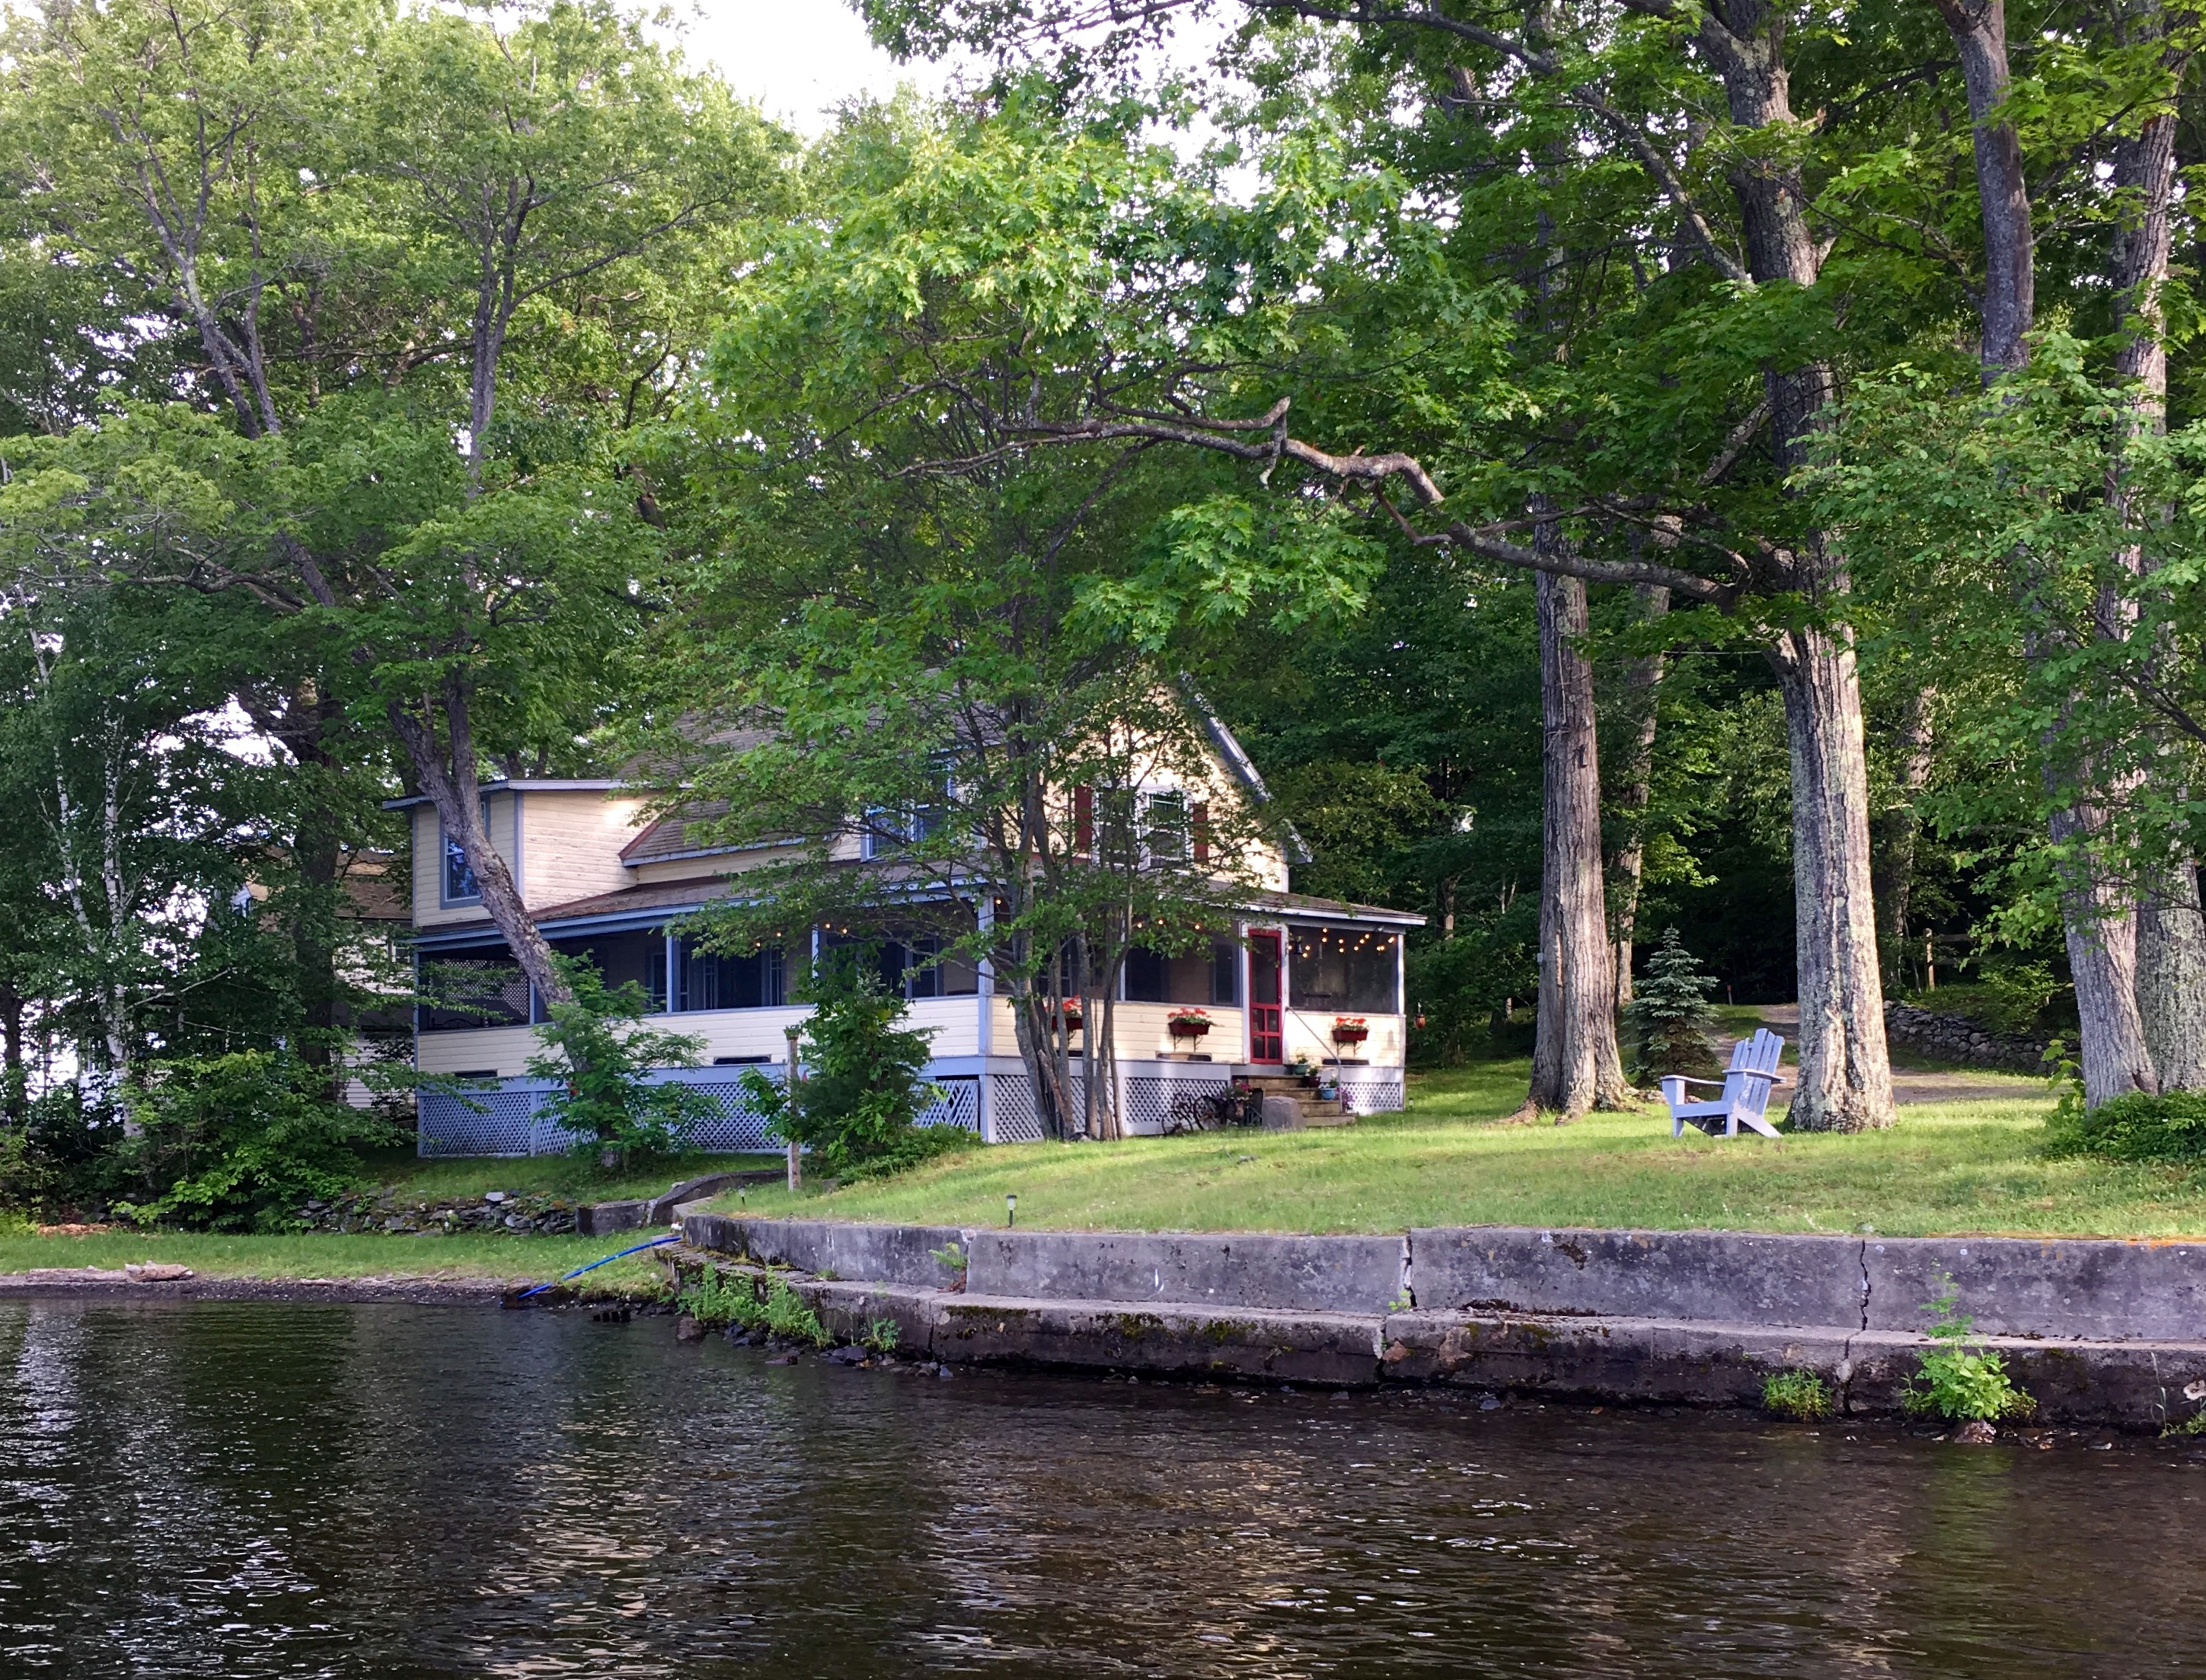 Single Family Home for Sale at 111 Nh Rte 4a, Enfield Enfield, New Hampshire, 03748 United States